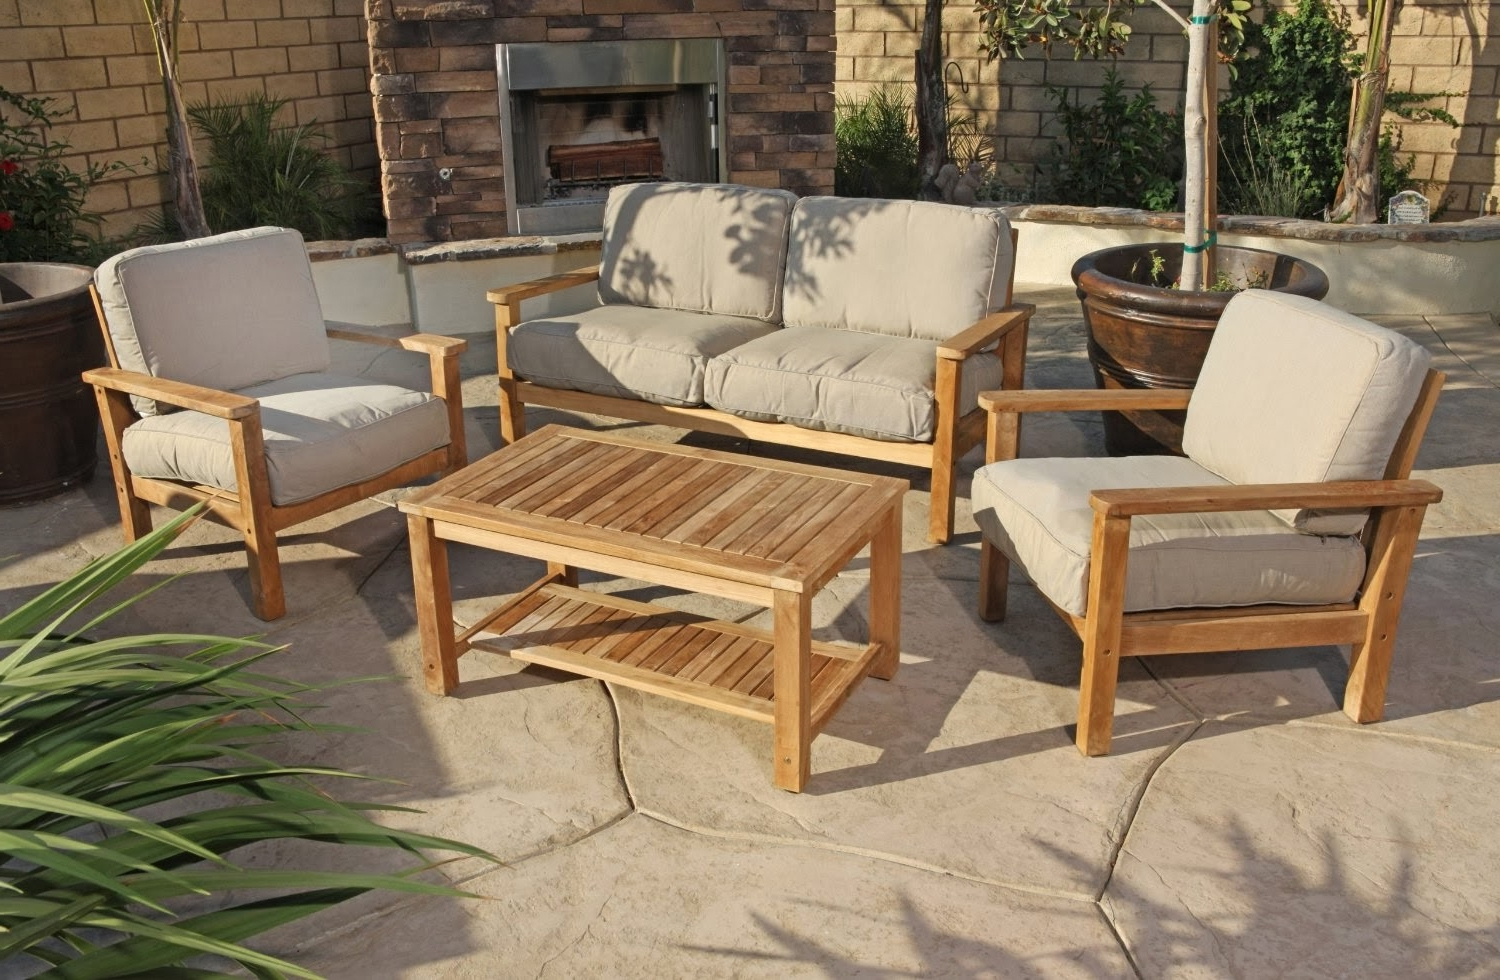 Image of: Modern Furniture Modern Teak Outdoor Furniture Medium Dark Inside Modern Teak Outdoor Furniture How To Care Modern Teak Outdoor Furniture